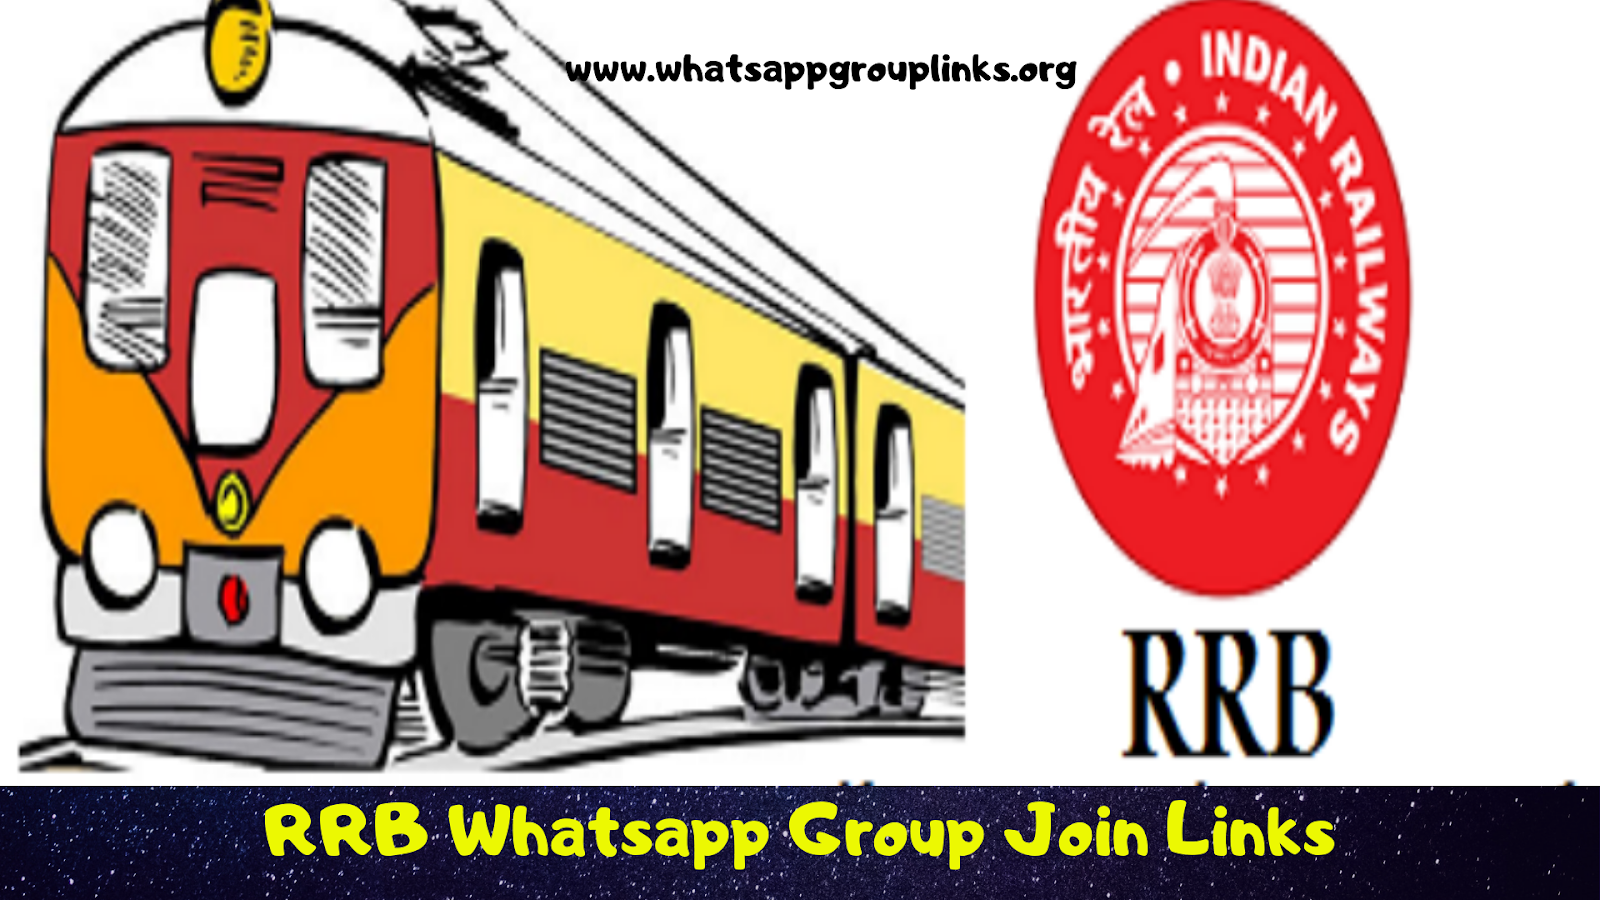 Join RRB Whatsapp Group Links List - Whatsapp Group Links